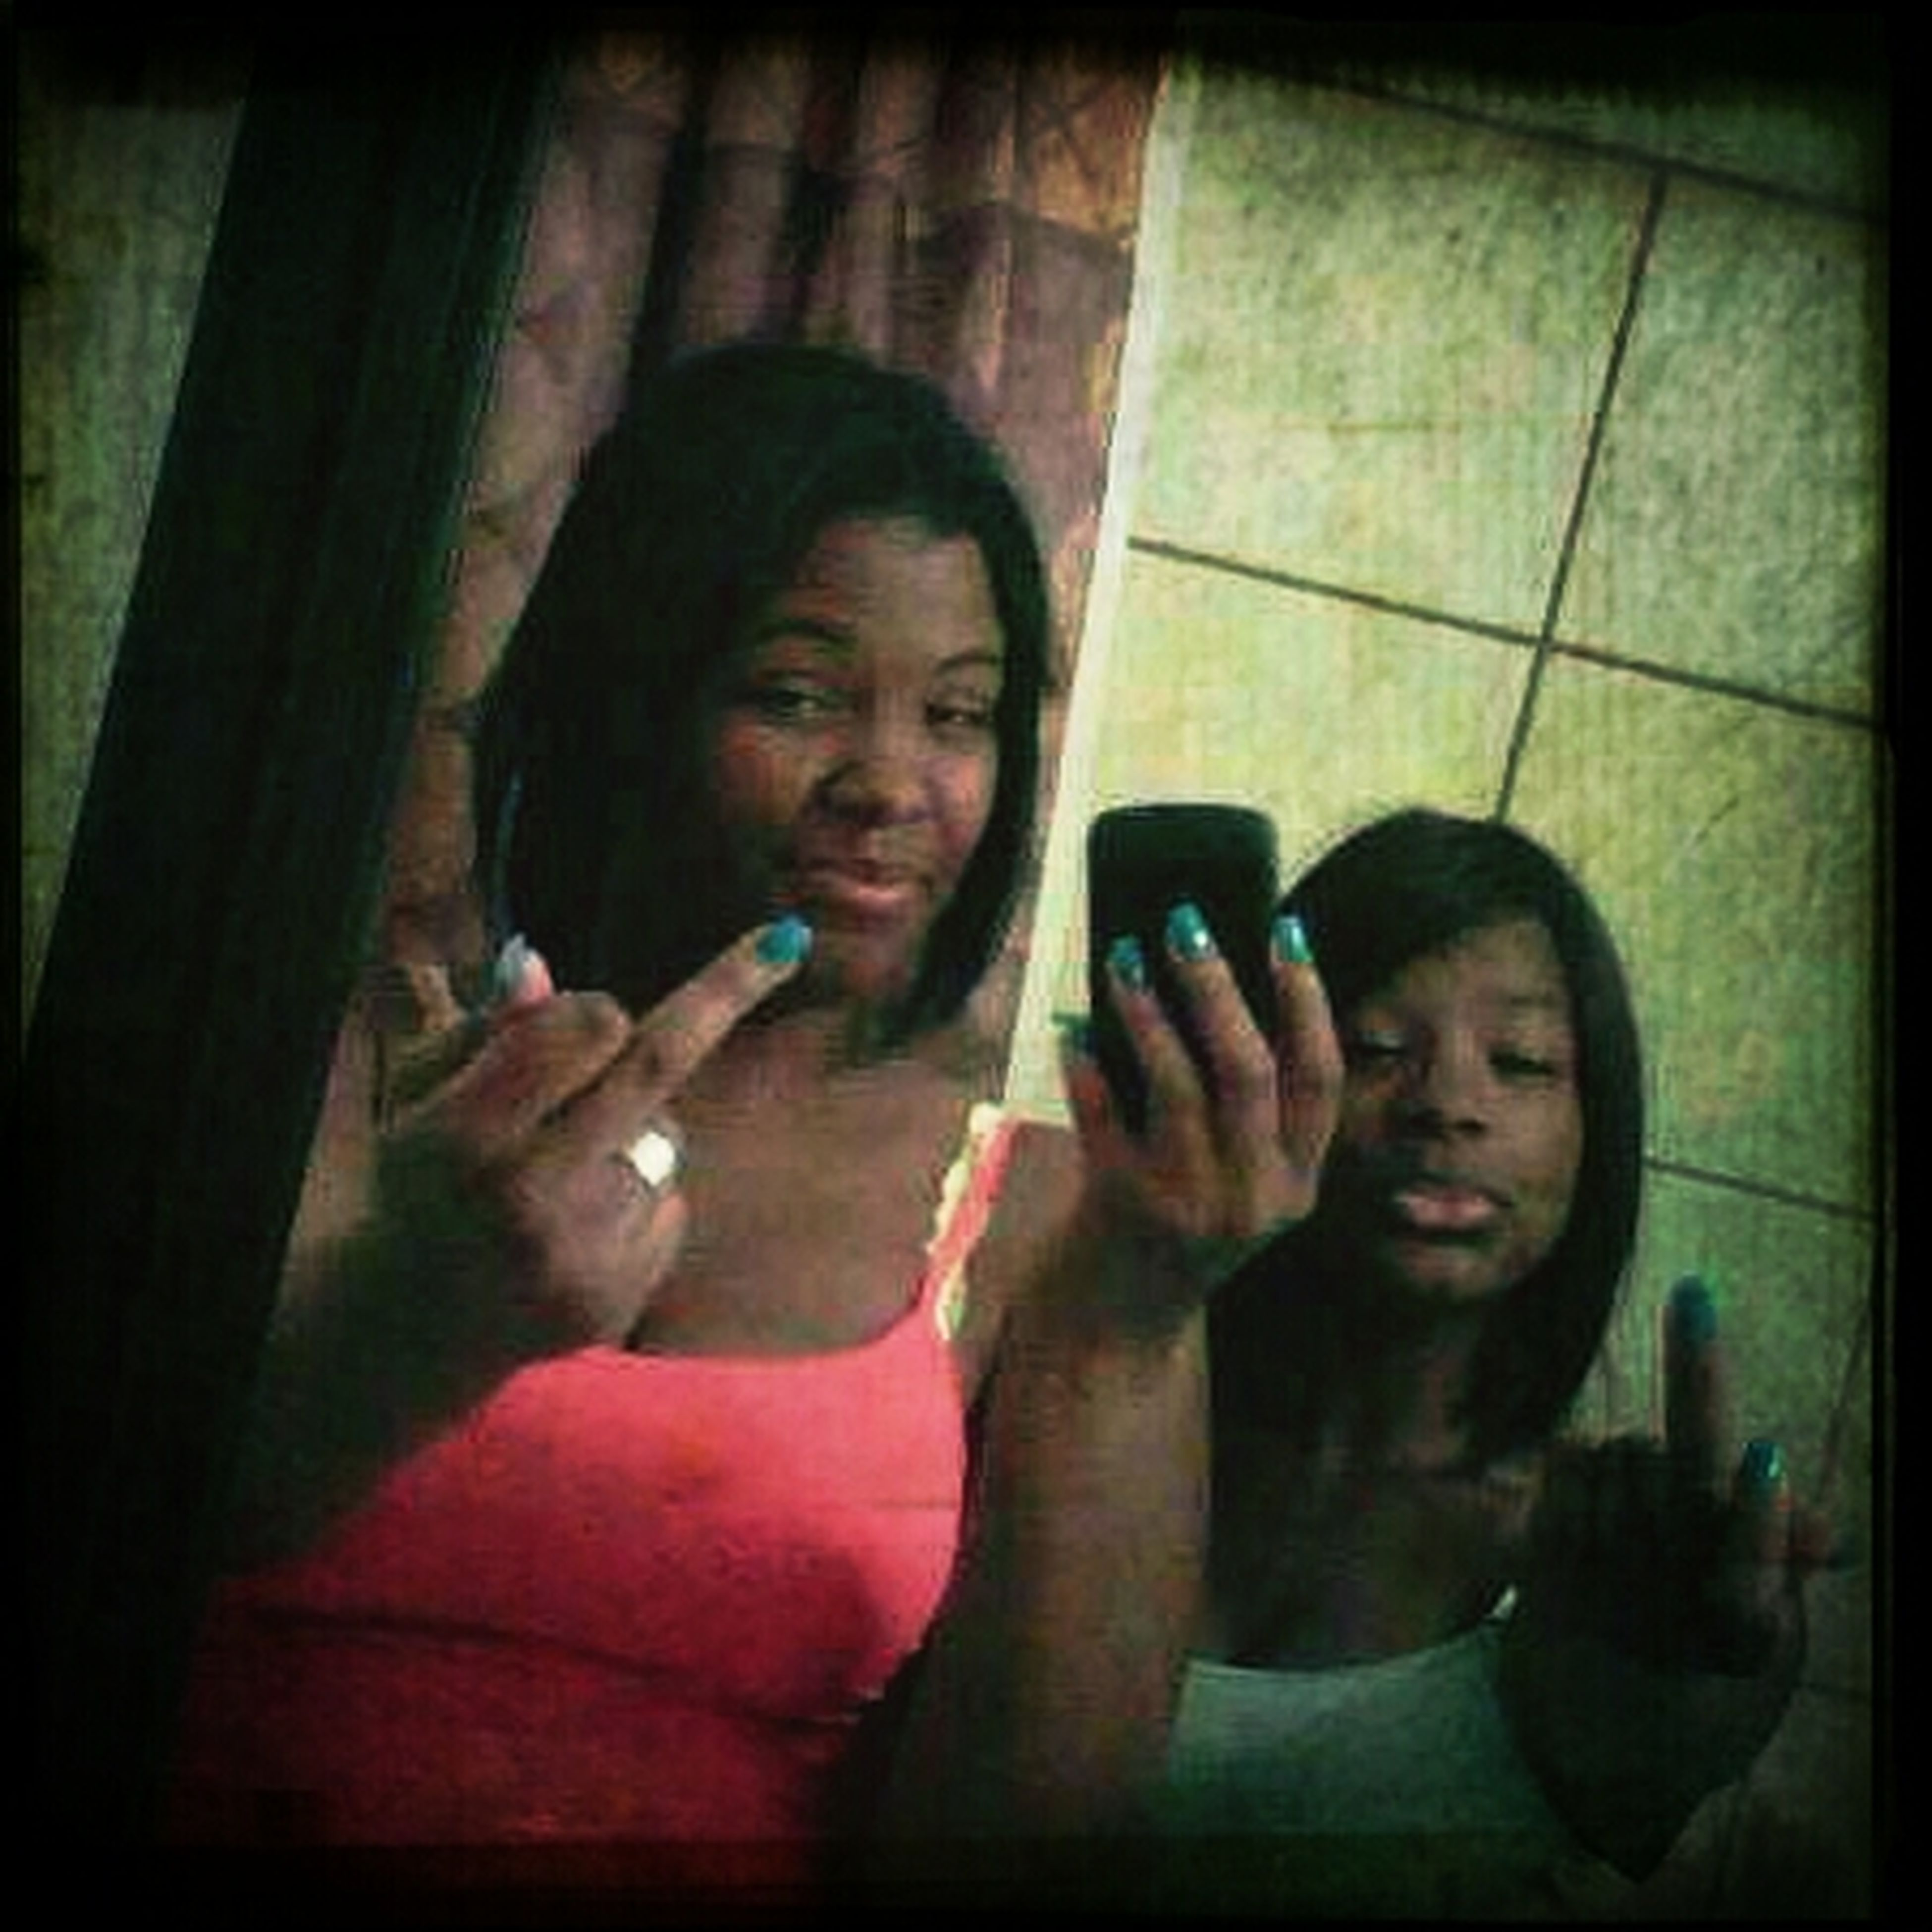 Me And My Ace!!